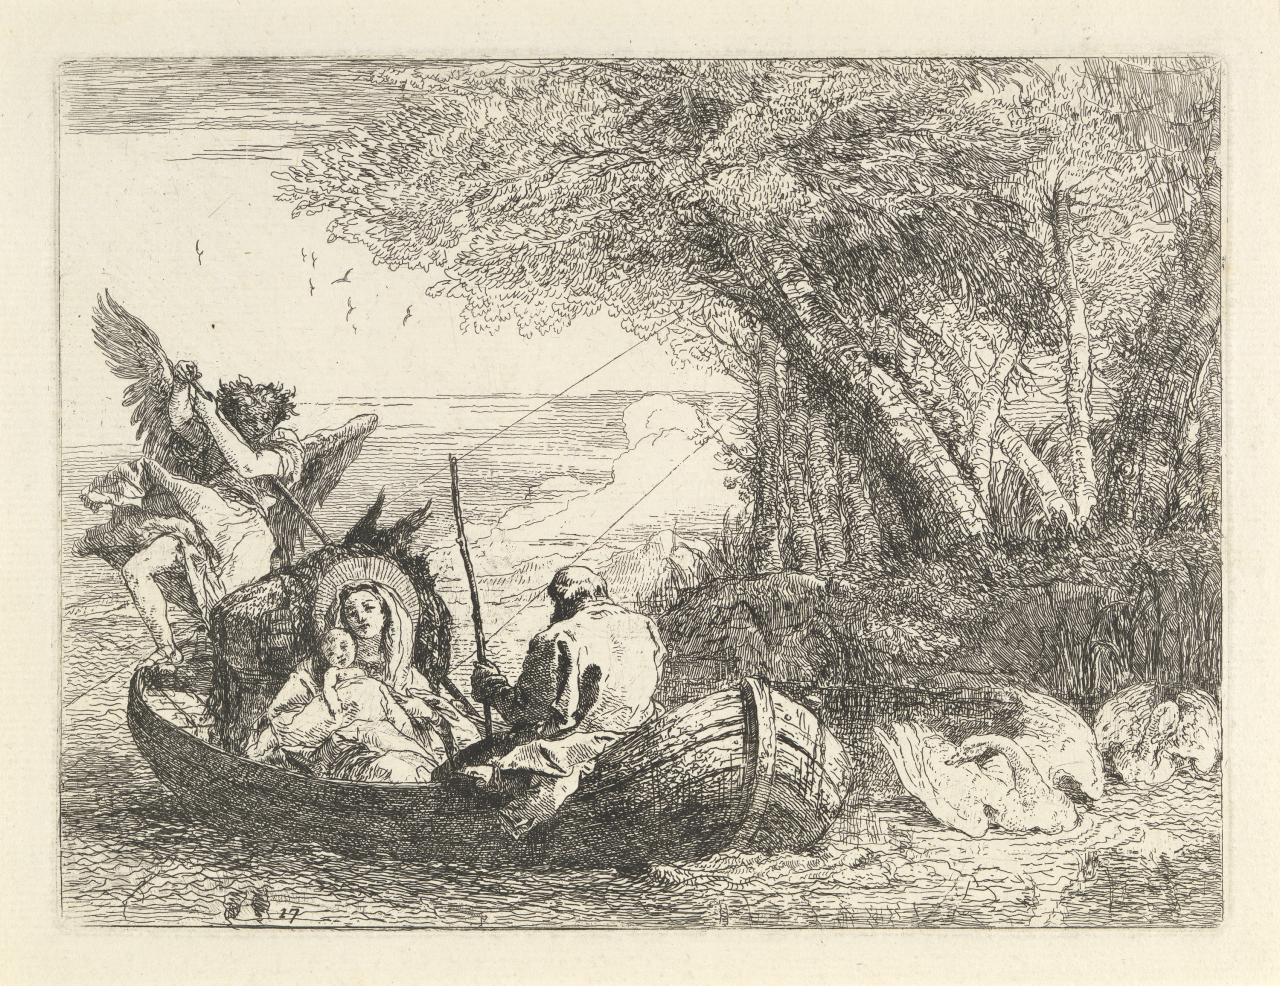 The Holy Family being ferried across the river (Flight into Egypt)